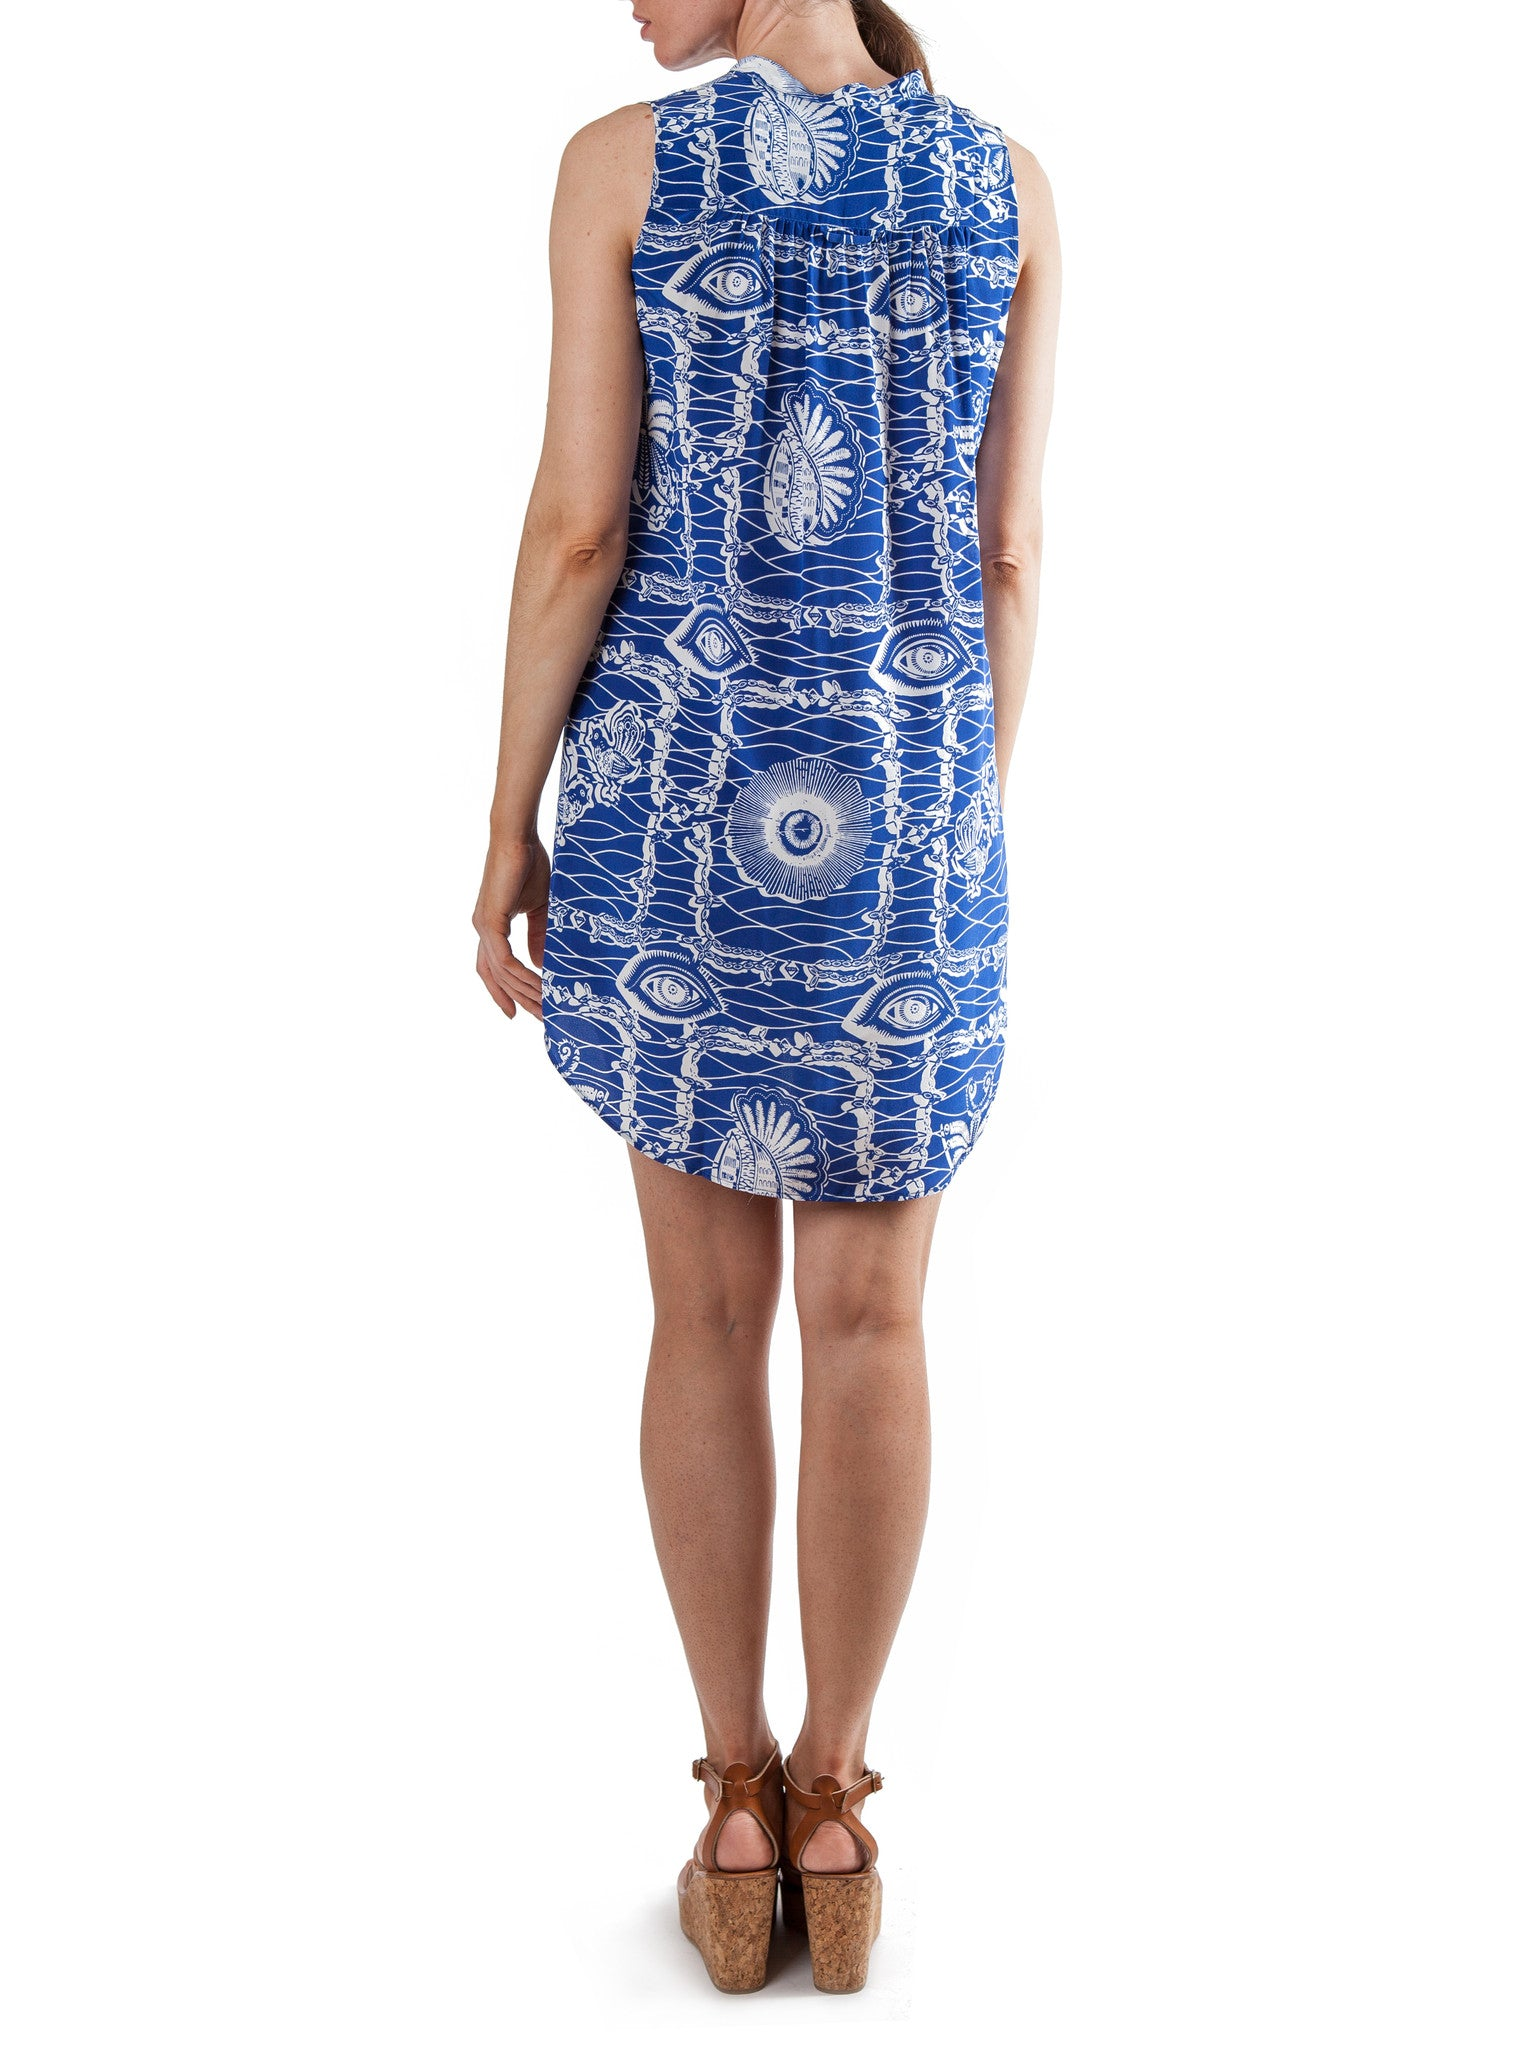 <b>Printed sleeveless short dress</b><br><i>Silk Crepe de Chine</i>